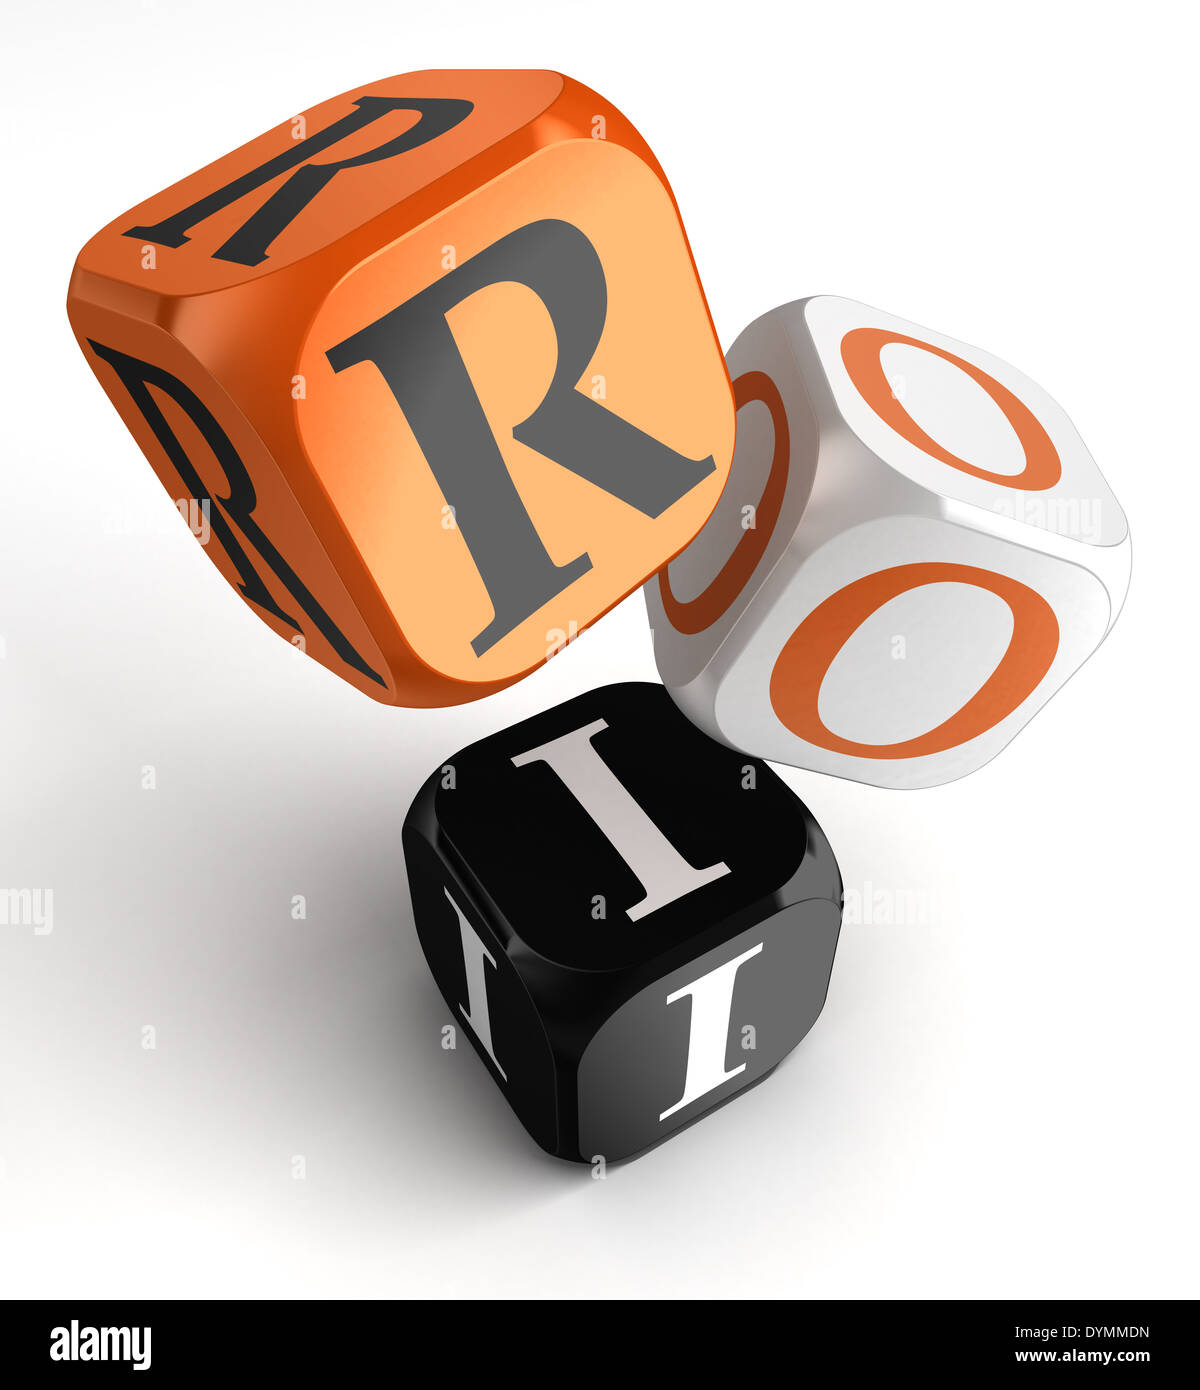 Background image mdn - Stock Photo Return On Investment Orange Black Dice Blocks On White Background Clipping Path Included